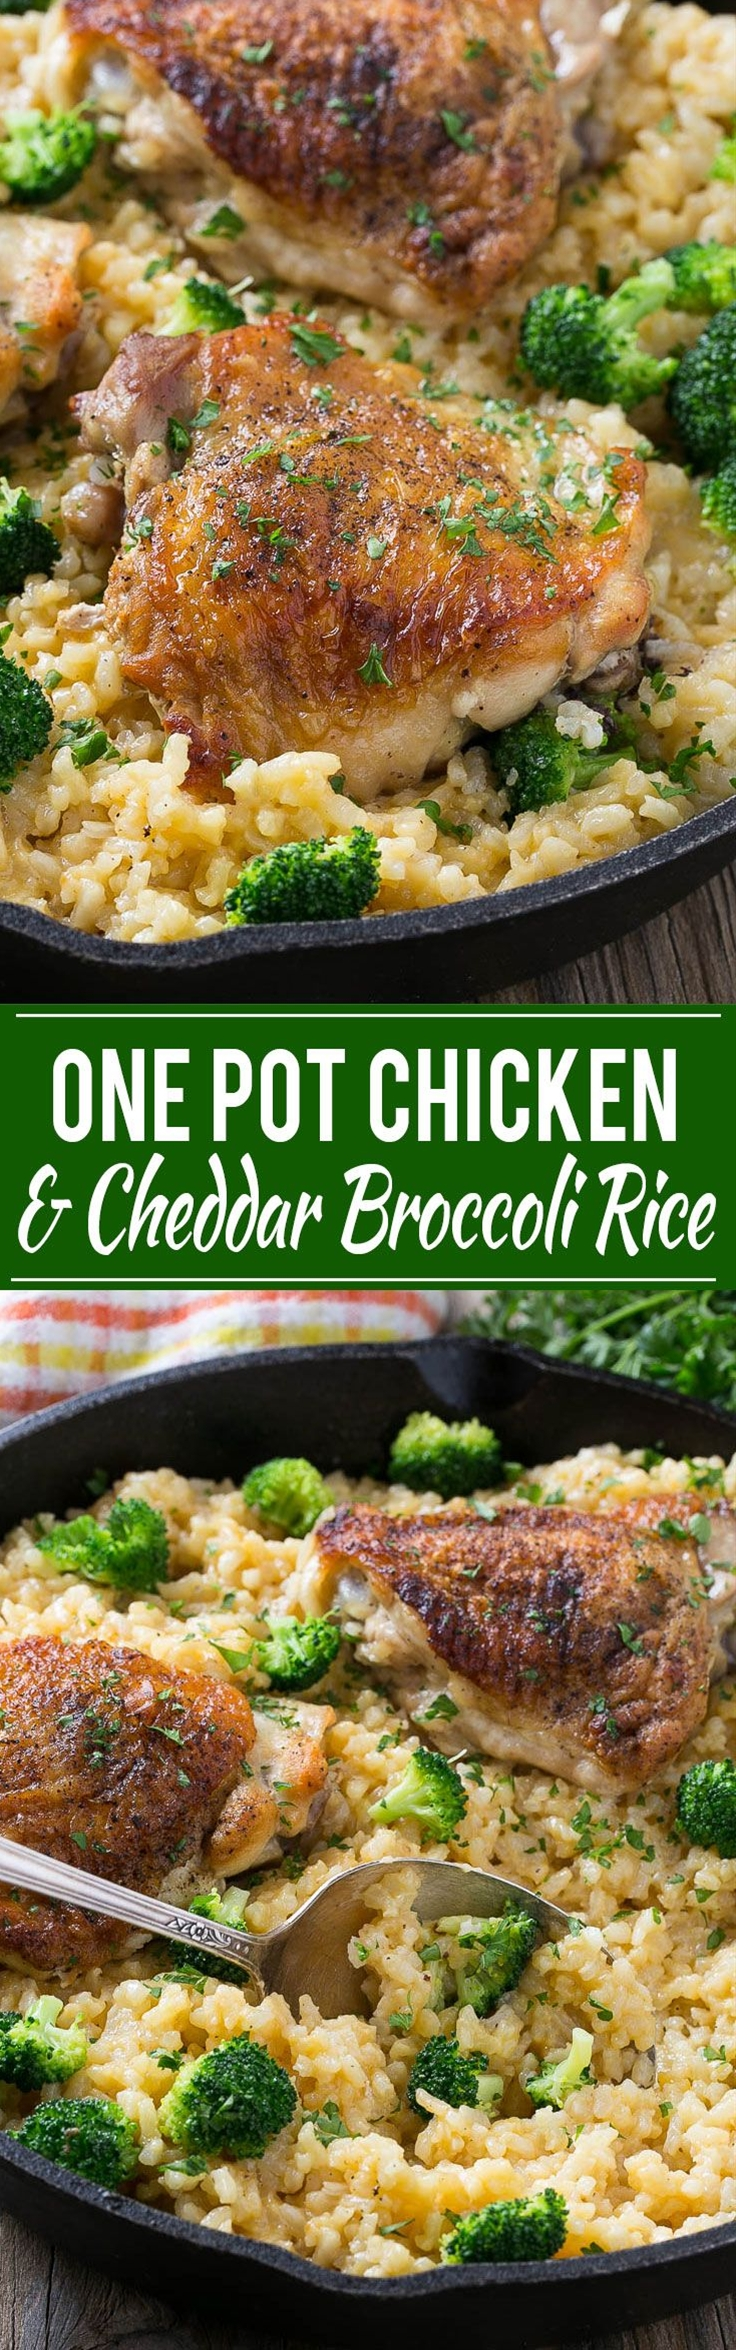 This one pot chicken with cheddar broccoli rice combines classic flavors for a quick and easy dinner. Chicken thighs are cooked with a creamy cheesy broccoli cheddar rice for a complete meal without all the cleanup.\n\n